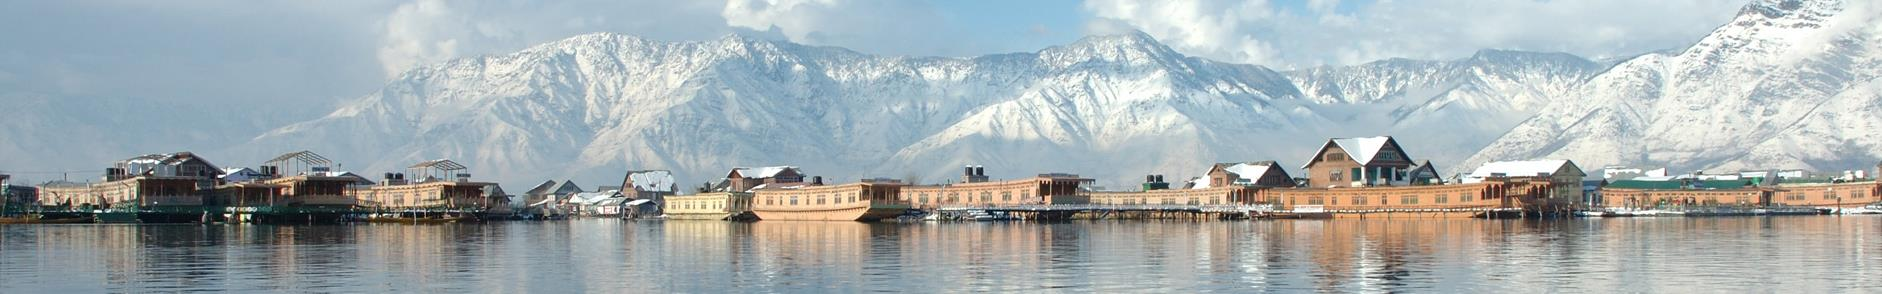 Jammu Kashmir Family Tours From Indore     Jammu Kashmir Honeymoon Tours from Indore     Jammu Kashmir Fishing Tours from Indore     Jammu Kashmir Houseboat Tours from Indore     Jammu Kashmir Skiing Tours from Indore     Jammu Kashmir Wildlife Tours from Indore     Jammu Kashmir Pilgrimage Tours from Indore     Jammu Kashmir Trekking Tours from Indore     Leh Ladakh Holiday Packages from Indore